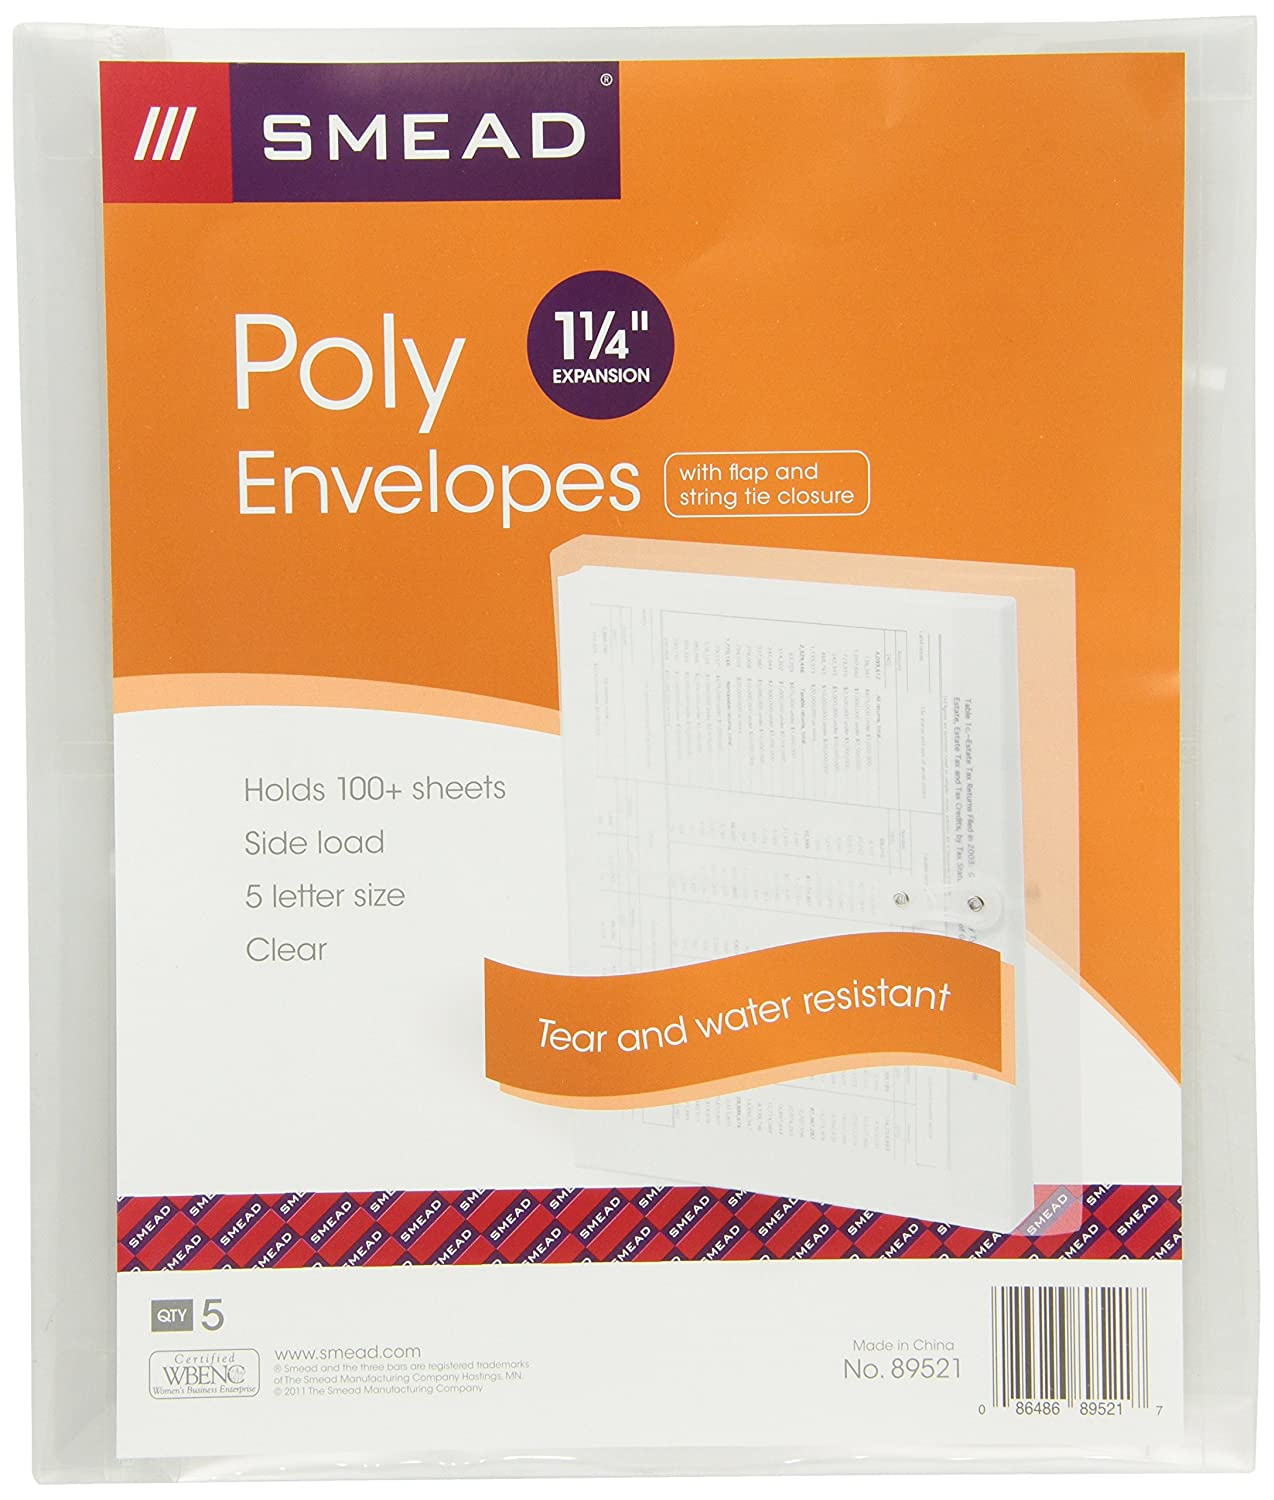 amazoncom smead poly envelope 1 14 expansion string tie closure side load letter size clear 5 per pack 89521 filing envelopes office